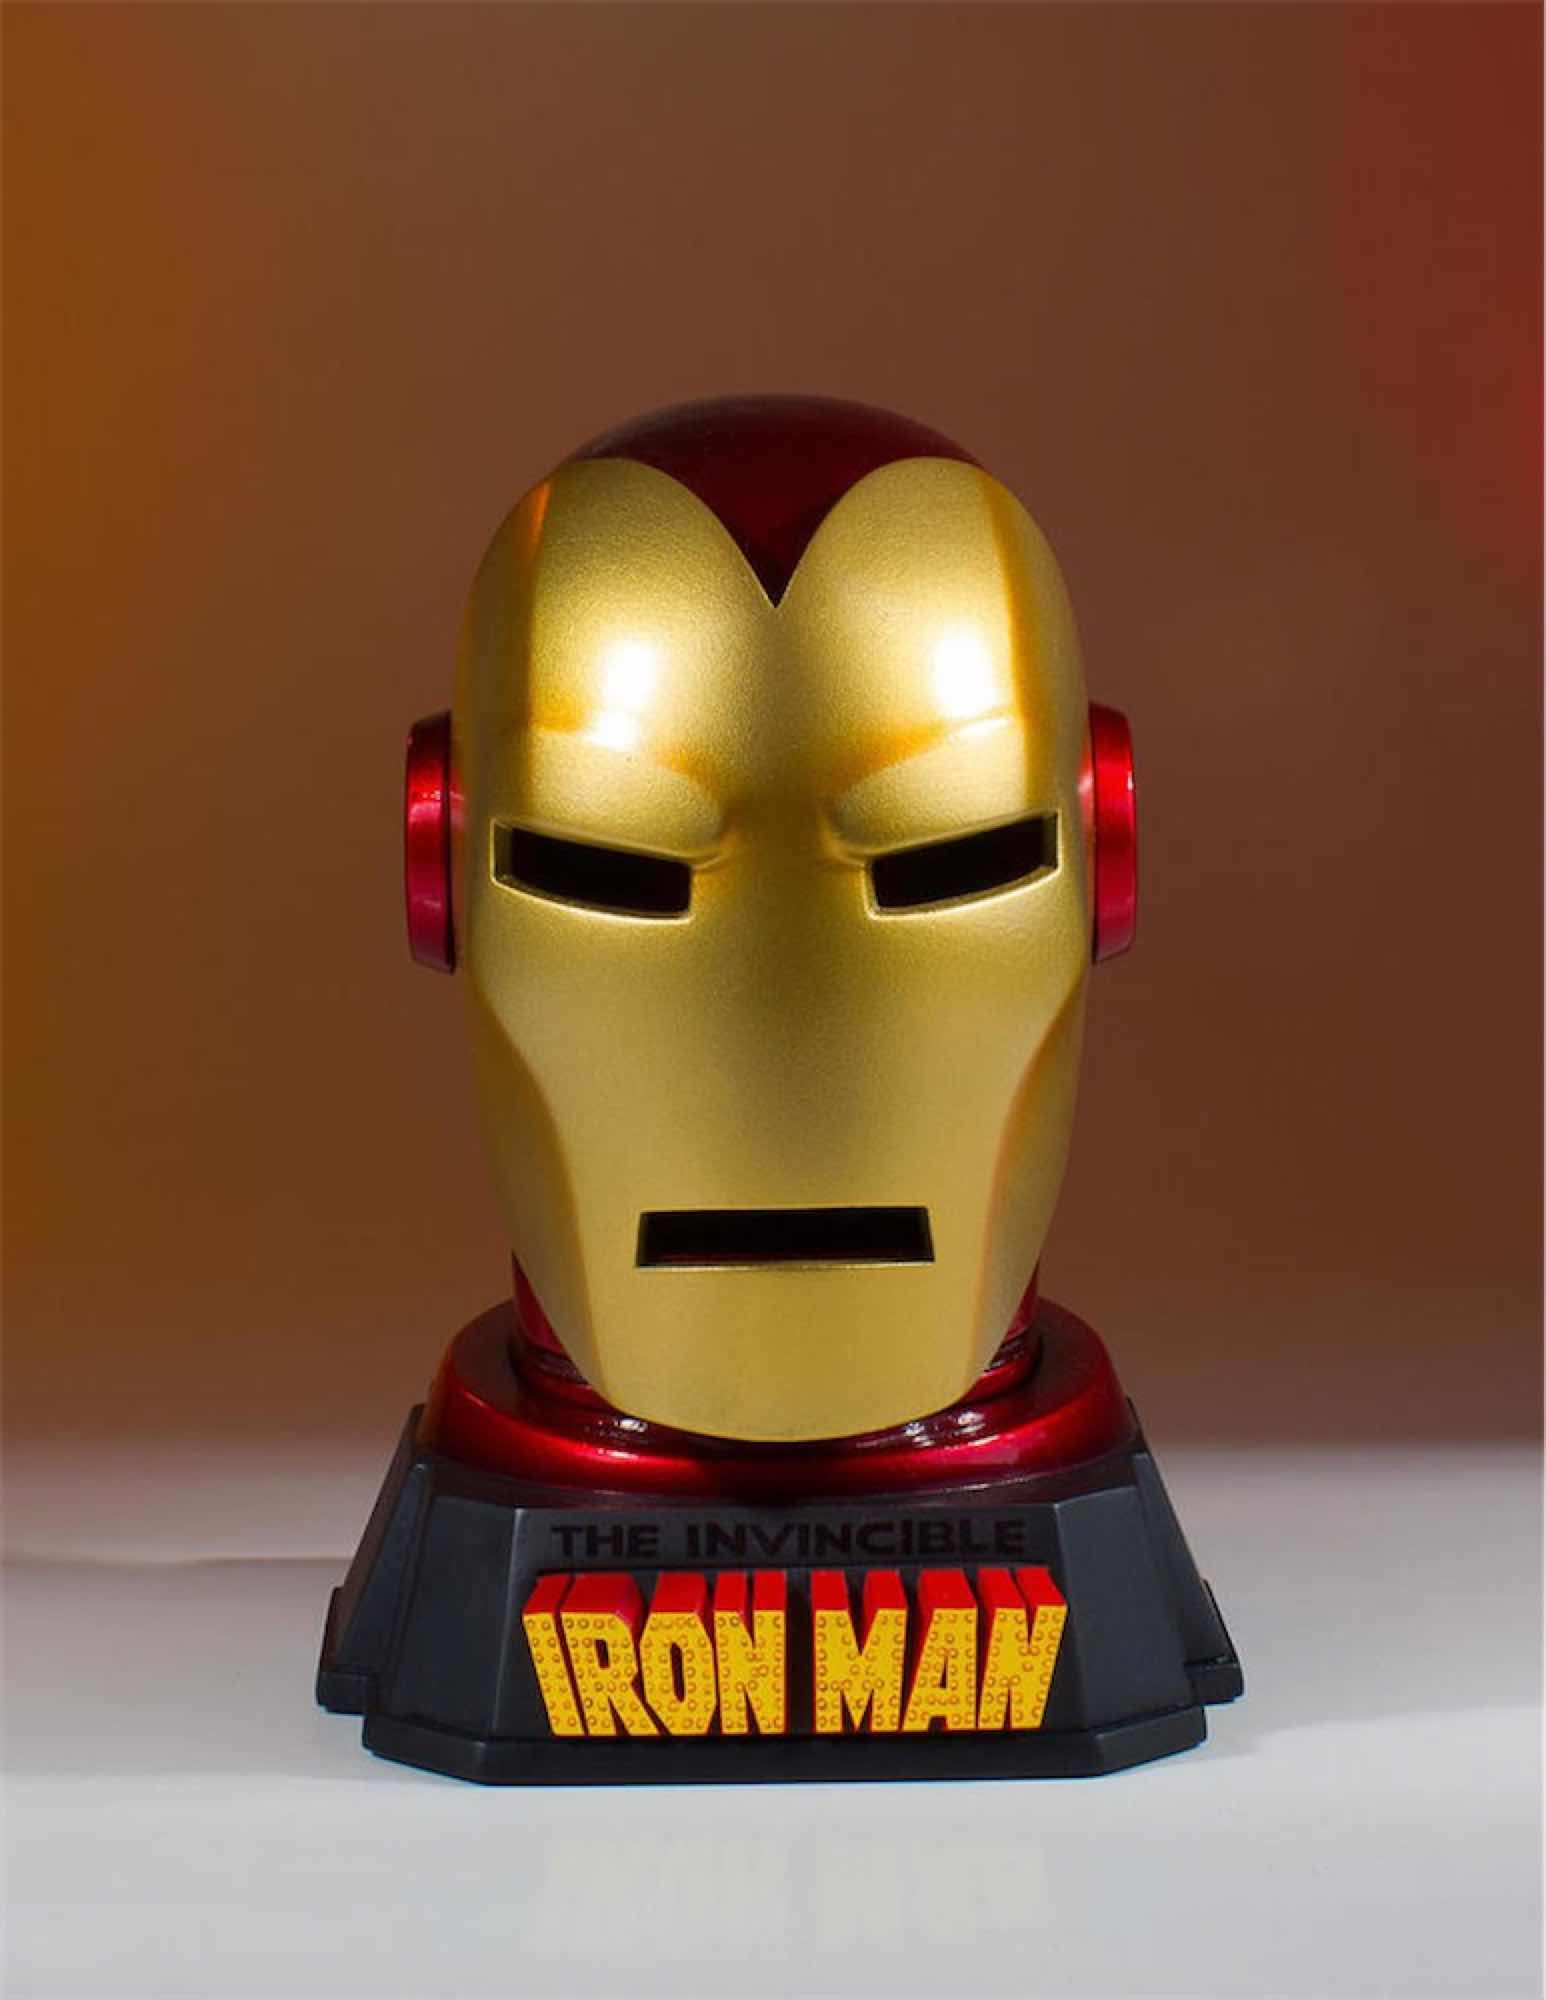 CASCO IRON MAN ARTICULO ESCRITORIO MARVEL GENTLE GIANT